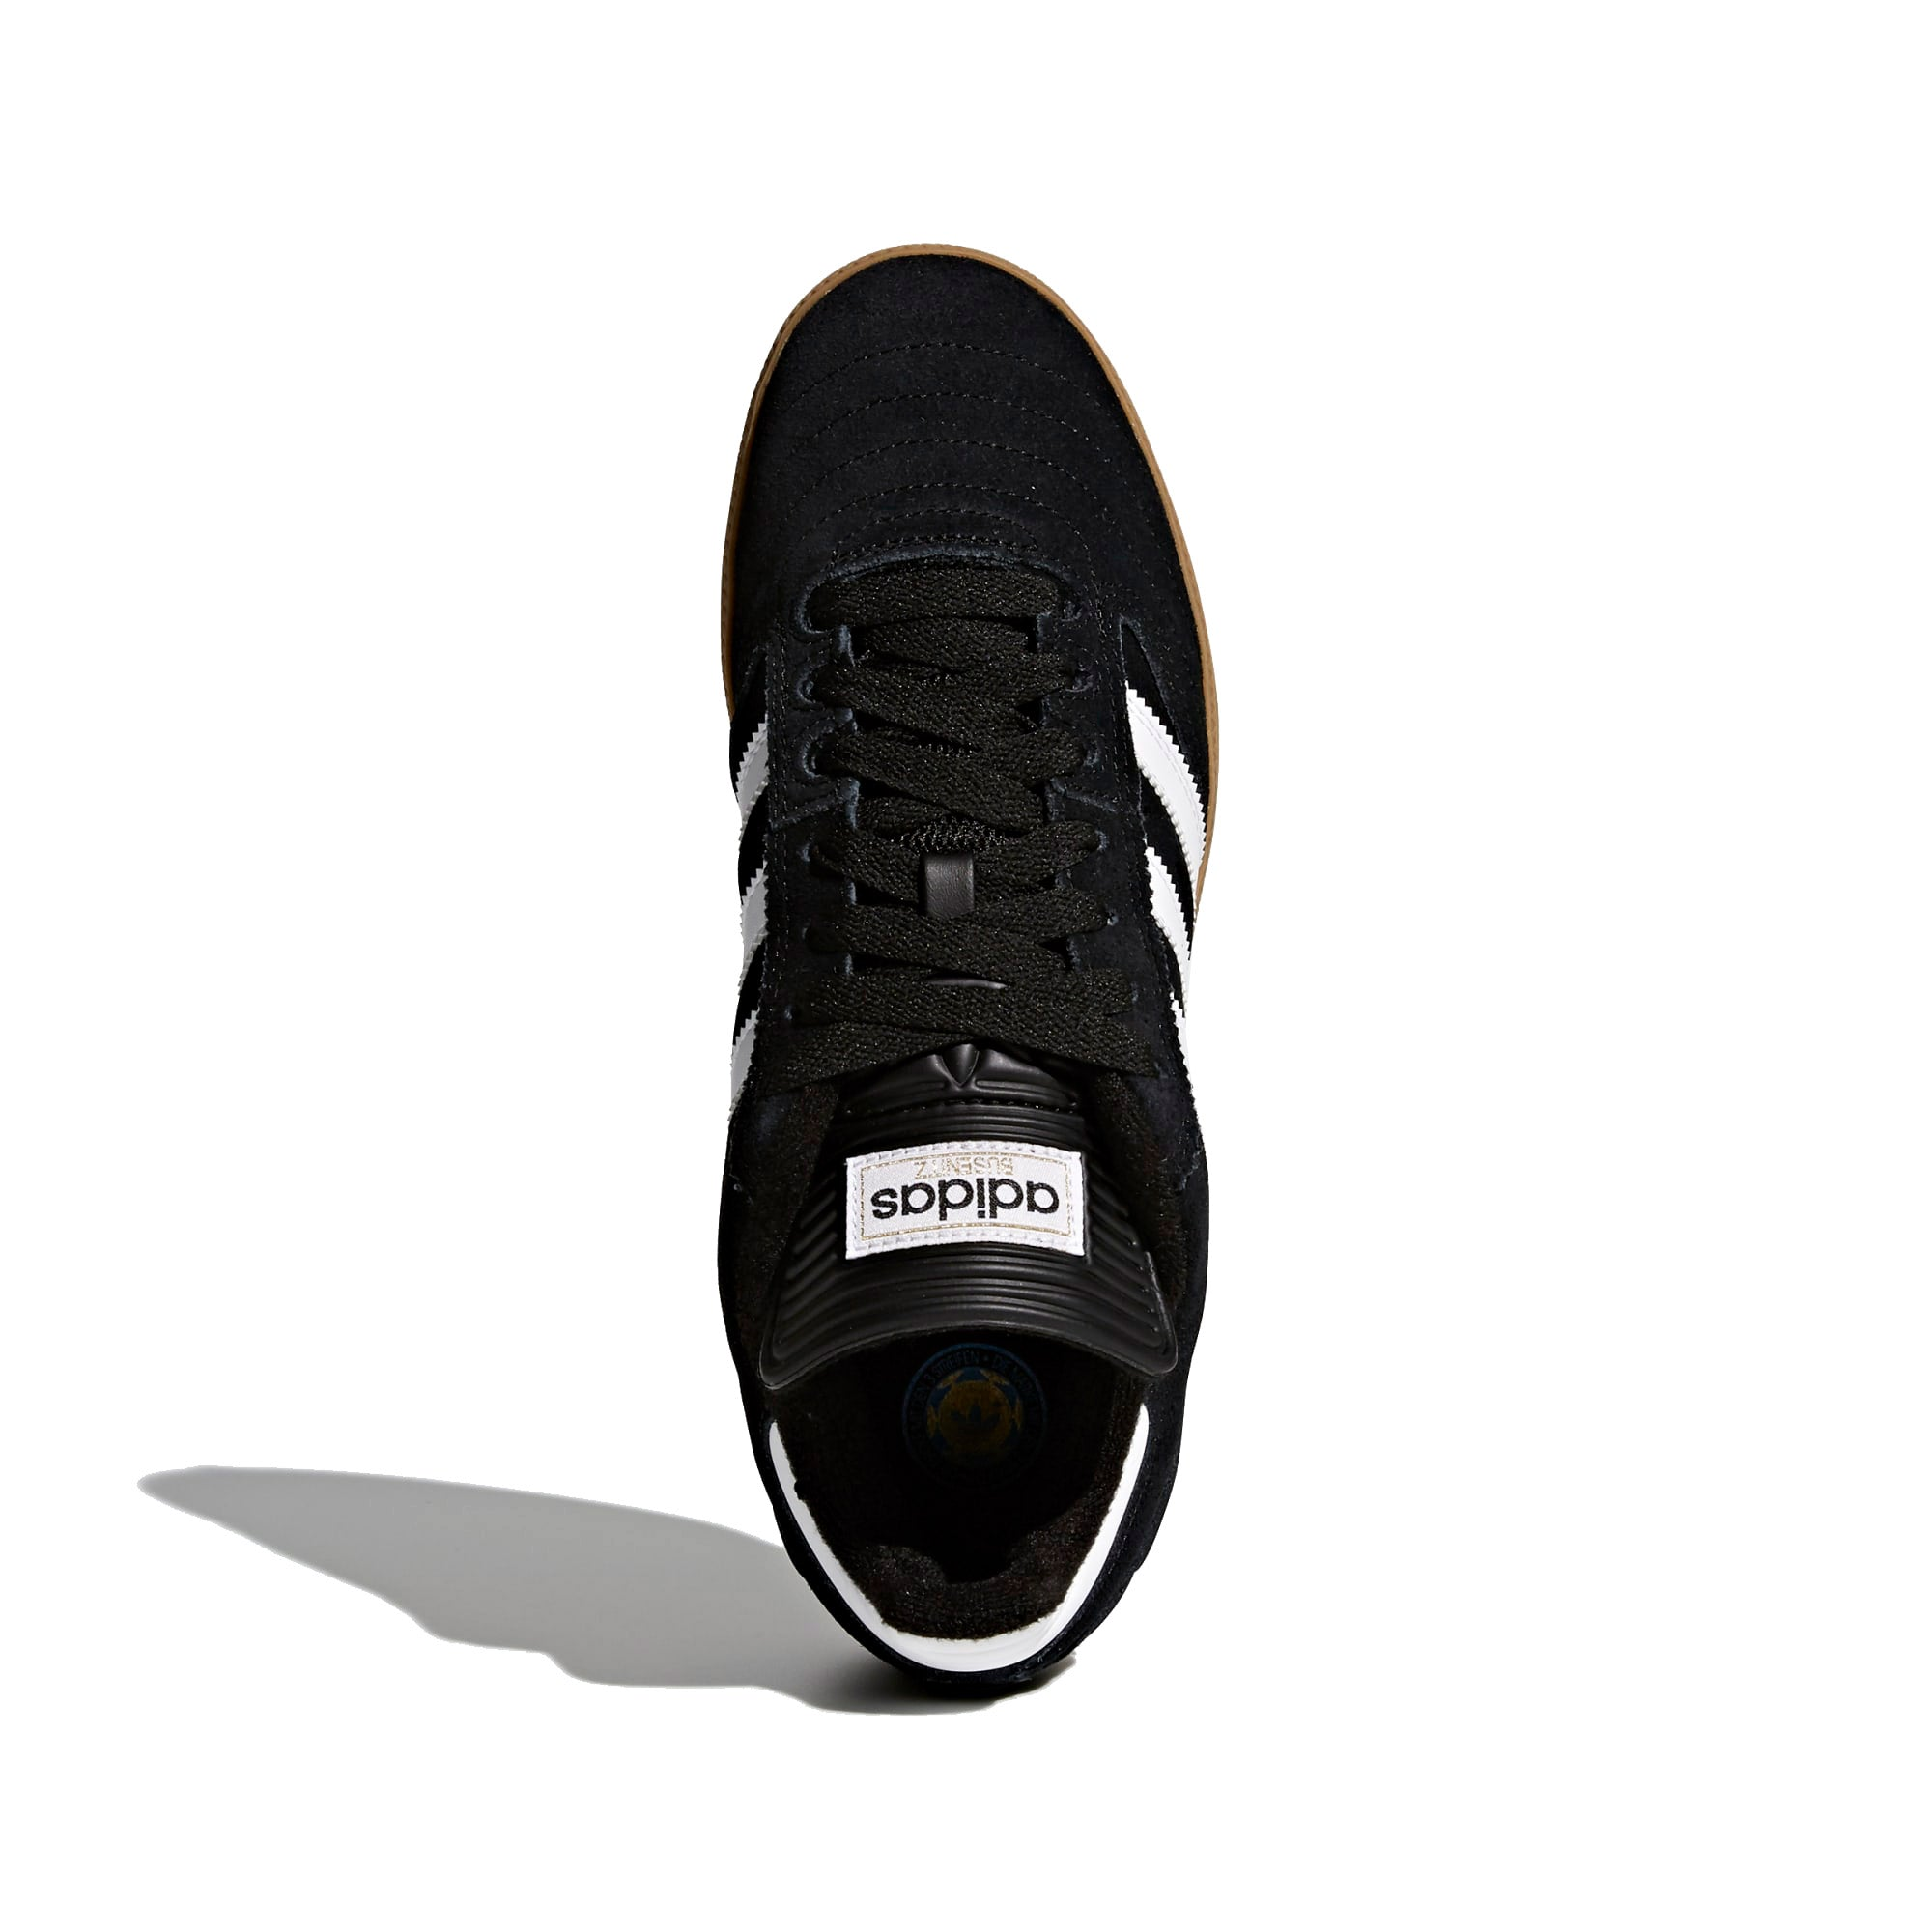 El principio Permanente Acostumbrar  Adidas Busenitz G48060-2 Black/Cloud White/Gold Metallic – Tiki Room  Skateboards